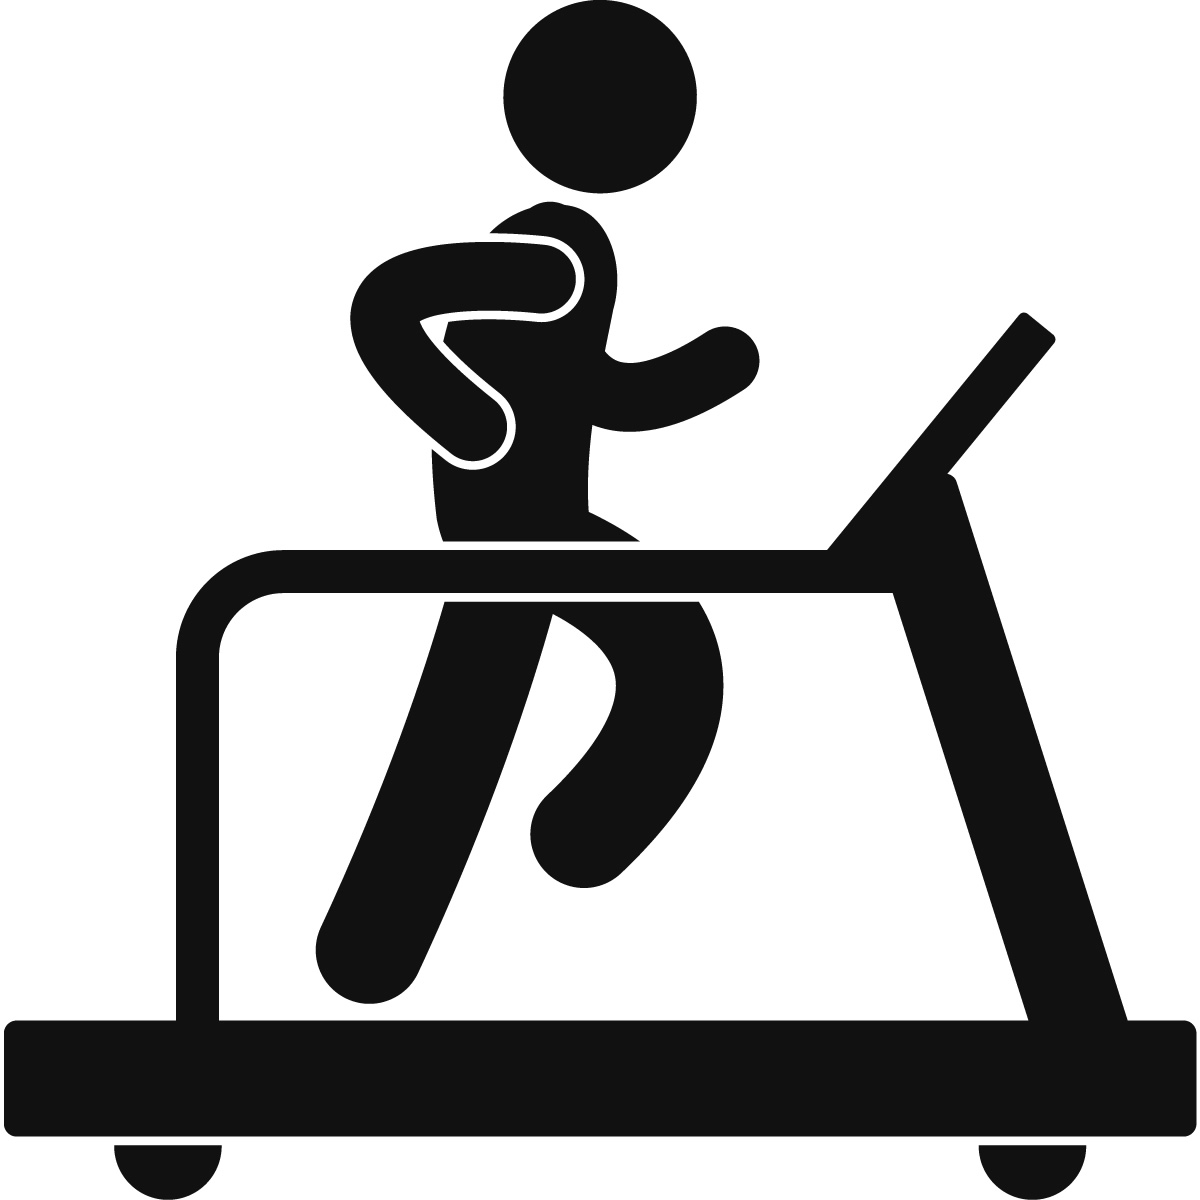 Treadmill clipart 9 » Clipart Station image royalty free library